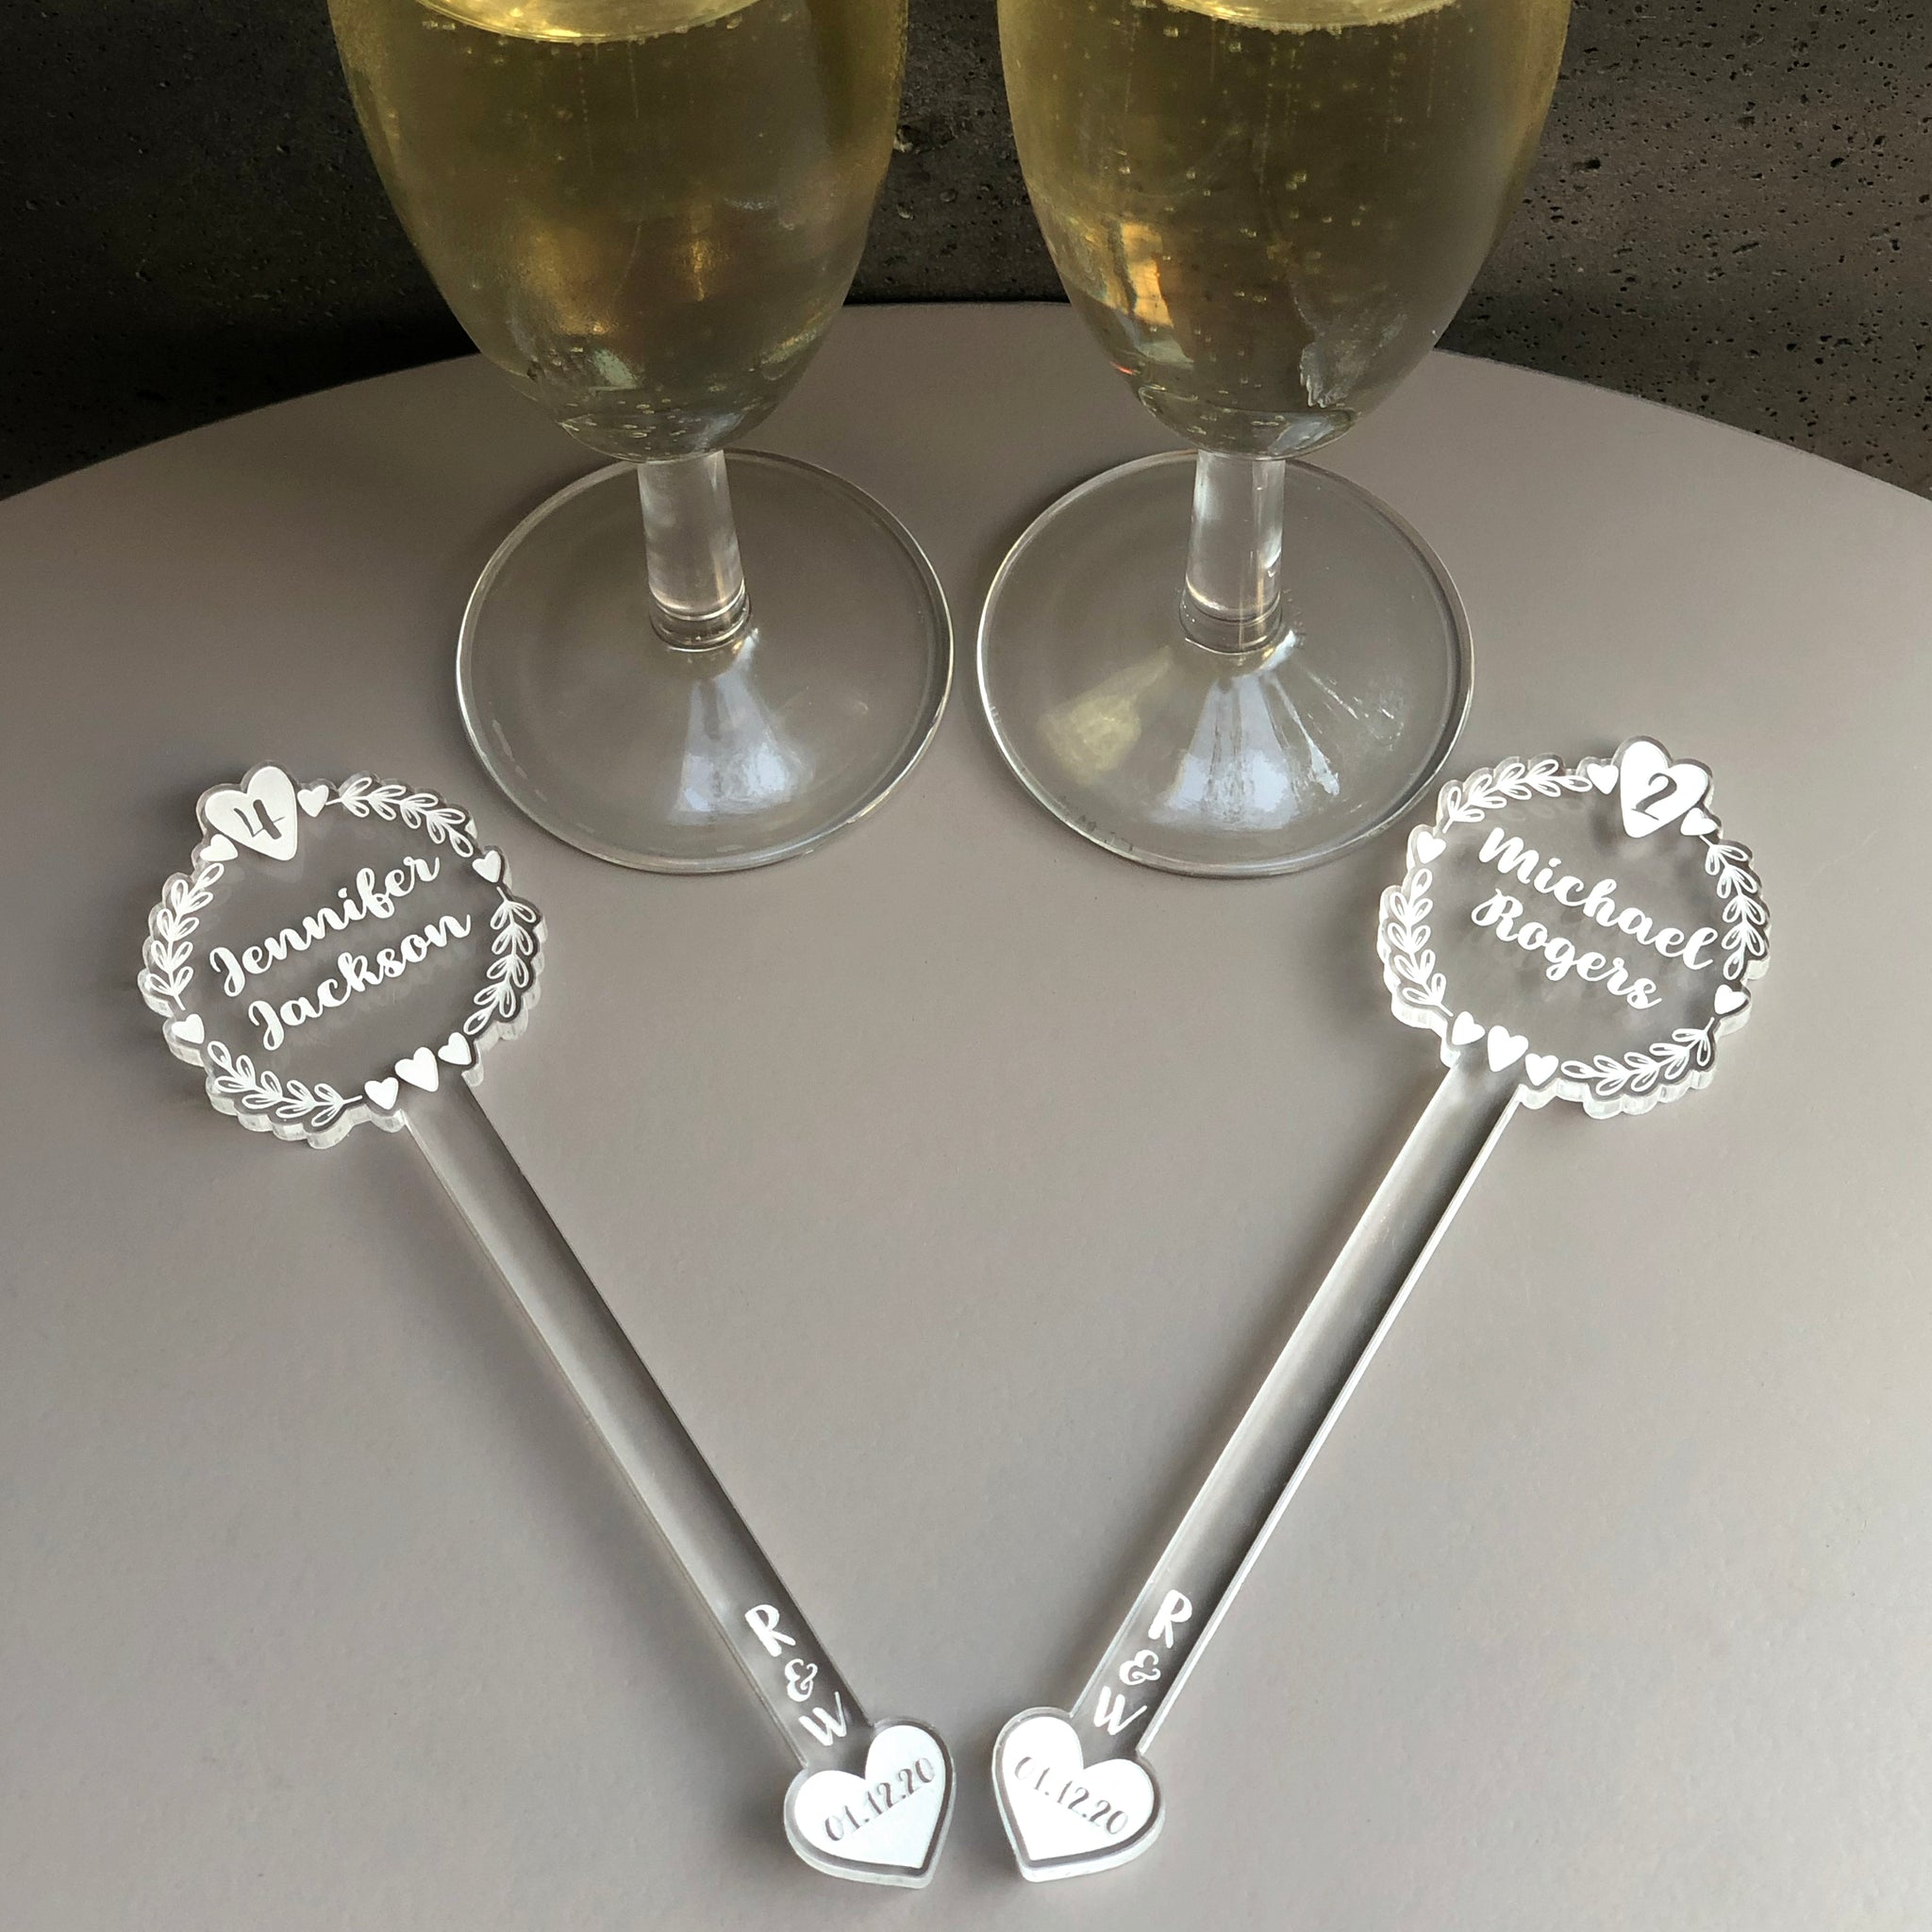 Wedding Table Place Name Swizzle Sticks | Brit and Bee